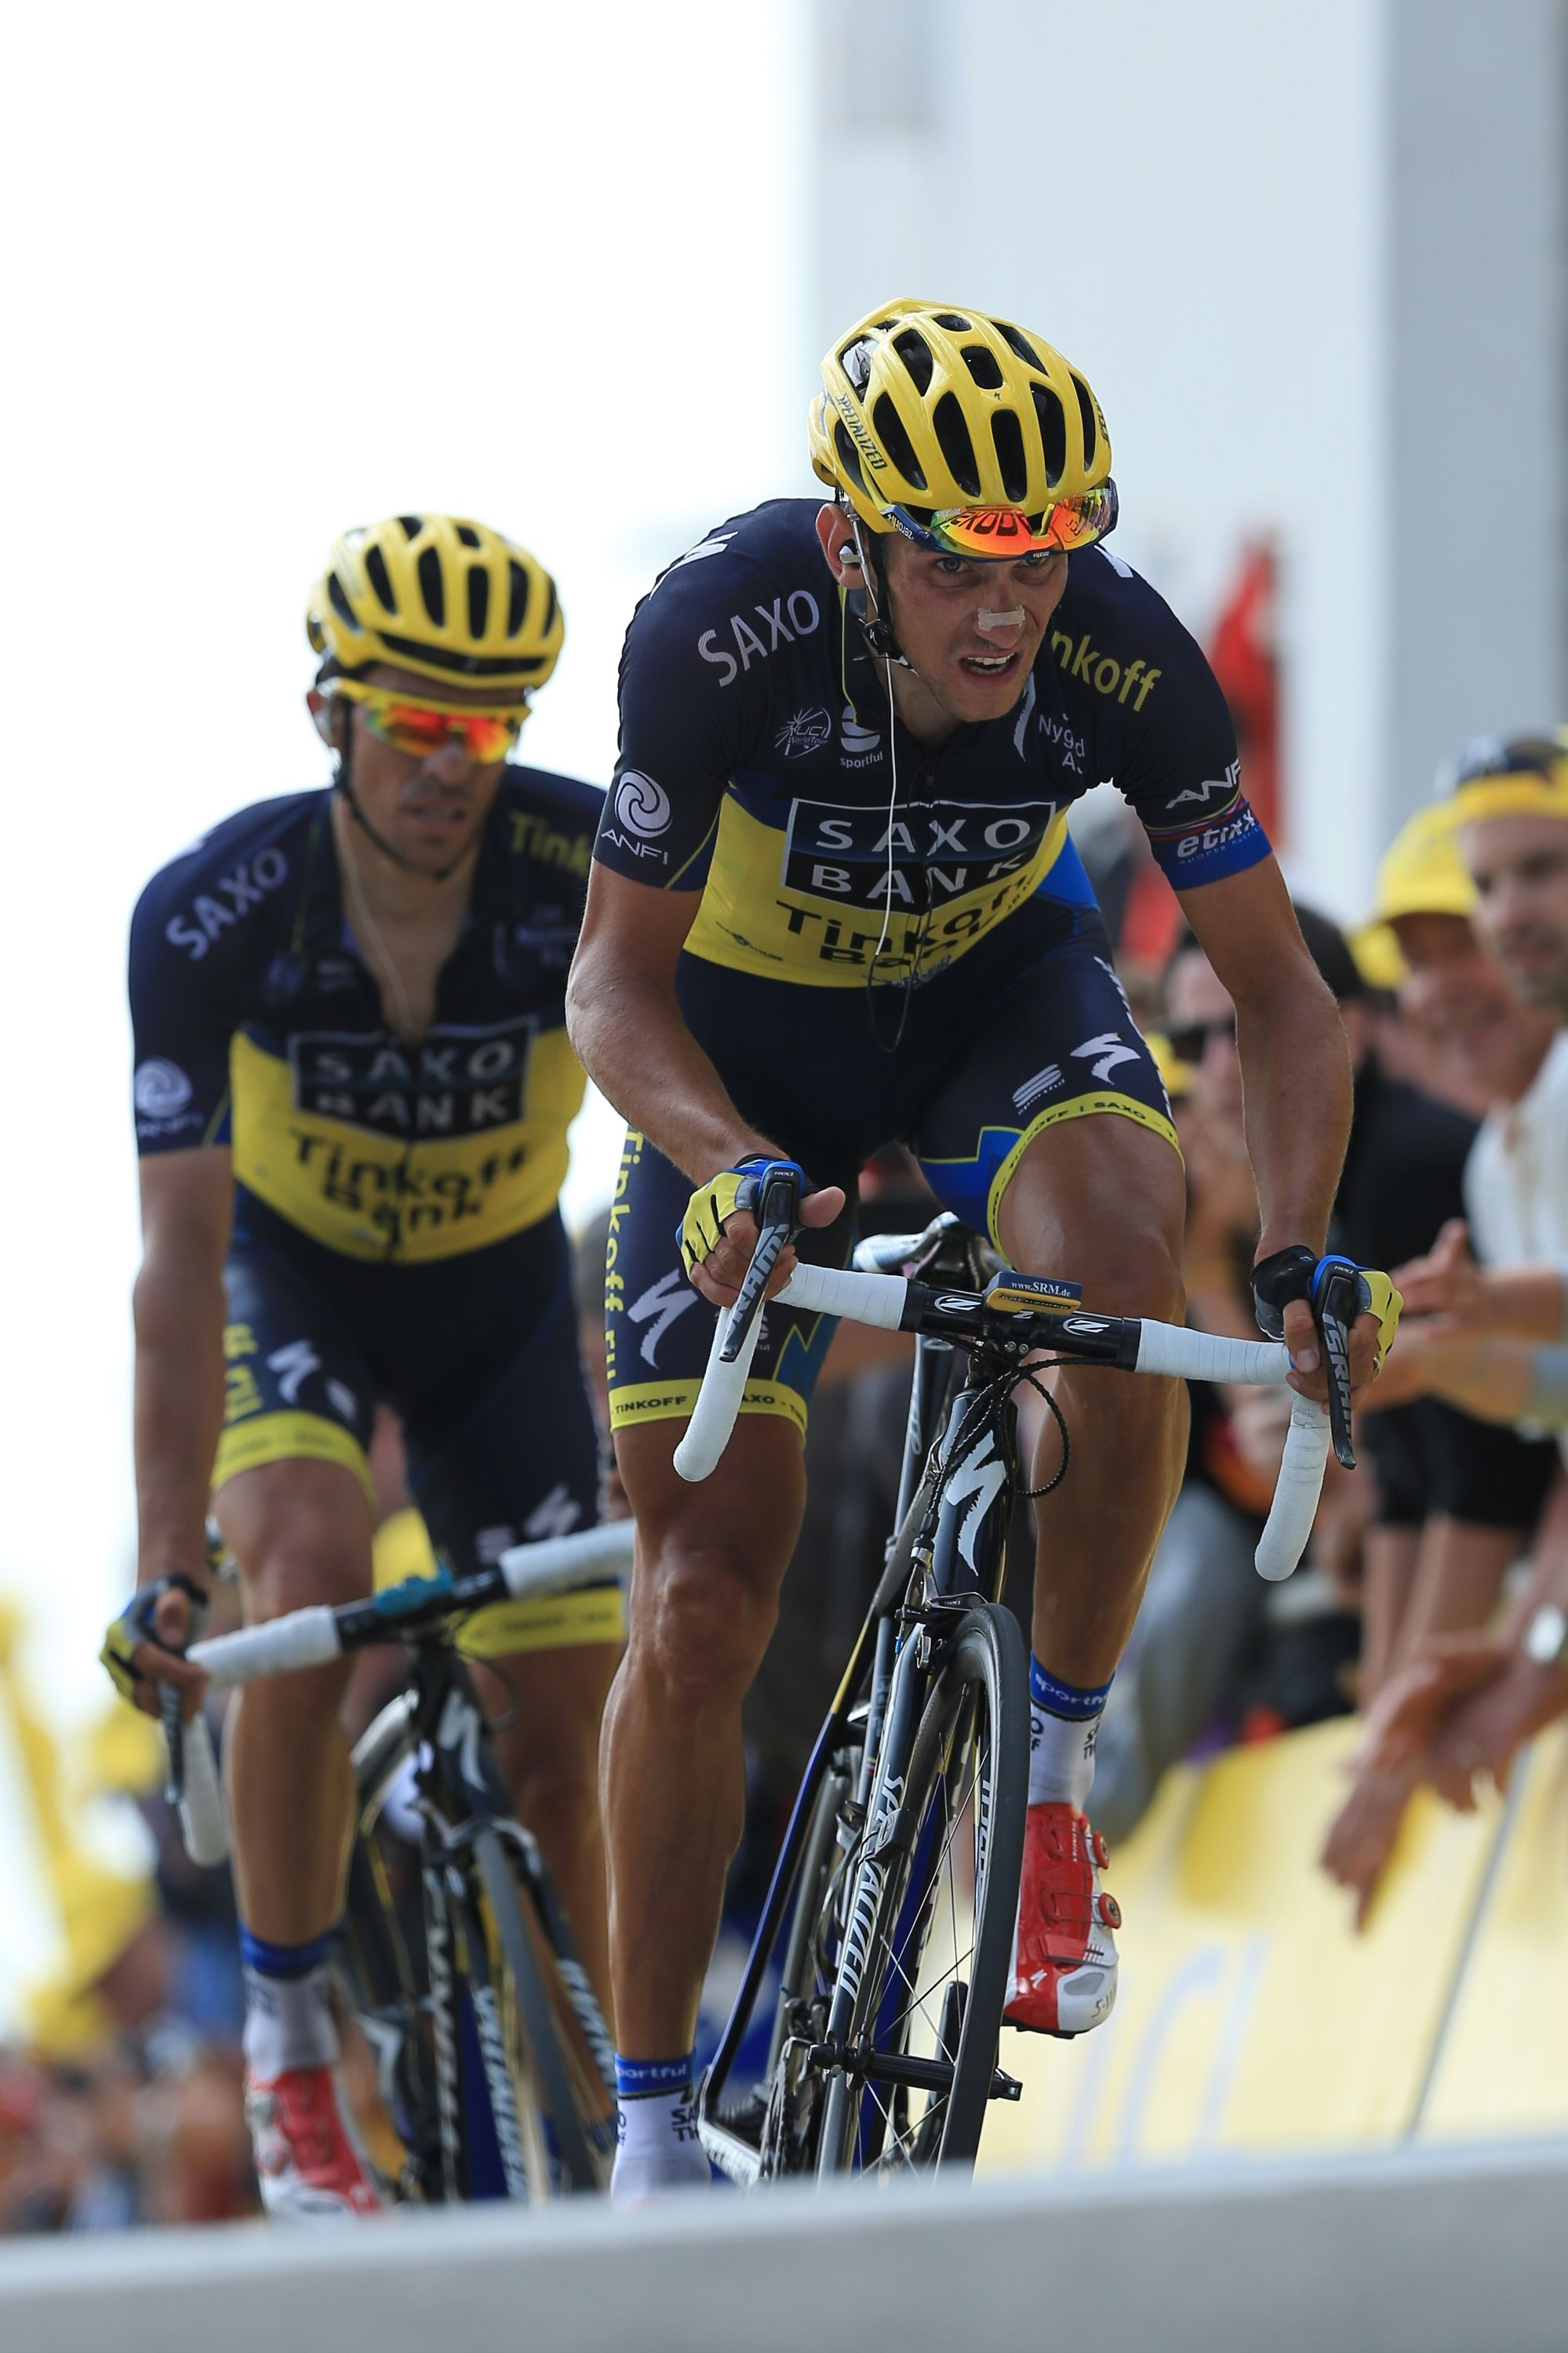 MONT VENTOUX, FRANCE - JULY 14: Roman Kreuzinger of the Czech Republic leads team-mate Alberto Contador of Spain and Team Saxo-Tinkoff over the finish line during stage fifteen of the 2013 Tour de France, a 242.5KM road stage from Givors to Mont Ventoux, on July 14, 2013 on Mont Ventoux, France. (Photo by Doug Pensinger/Getty Images)